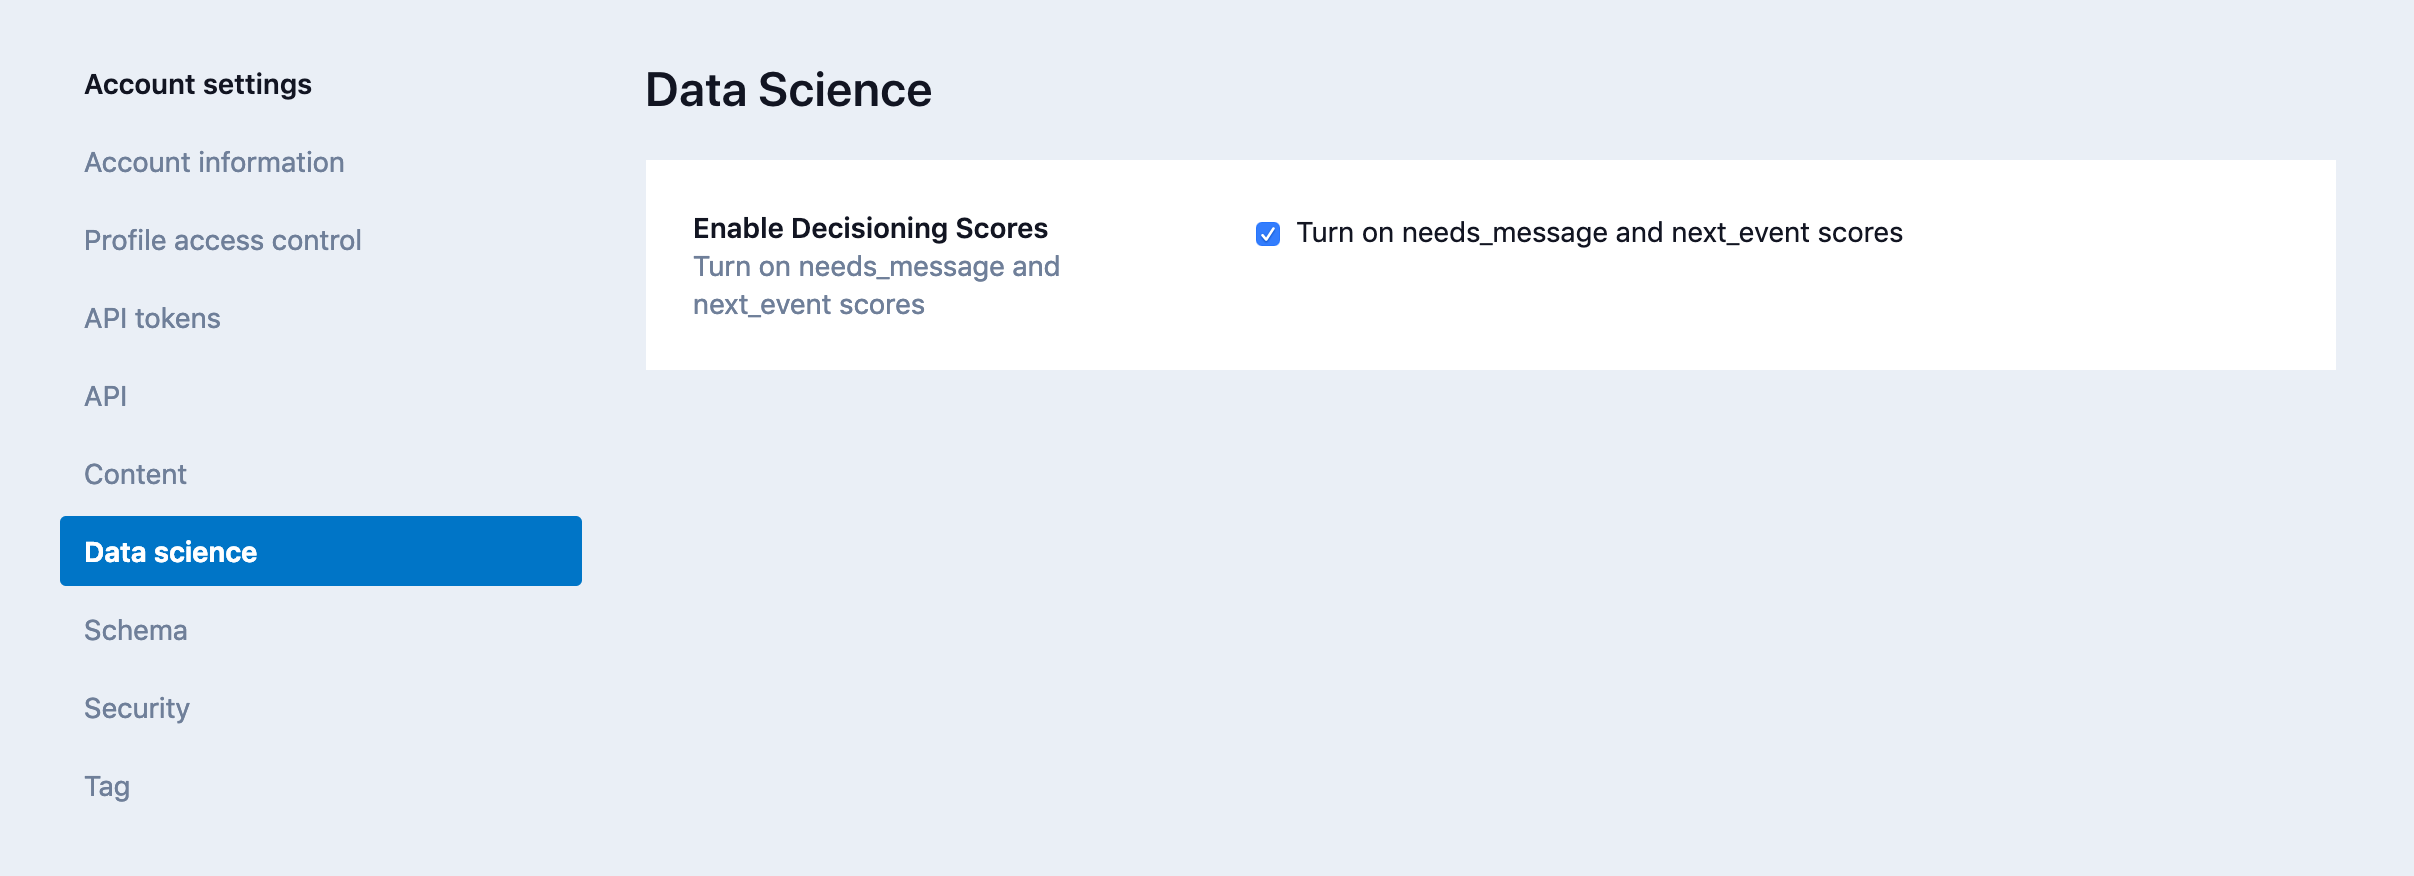 Account Settings - Data Science